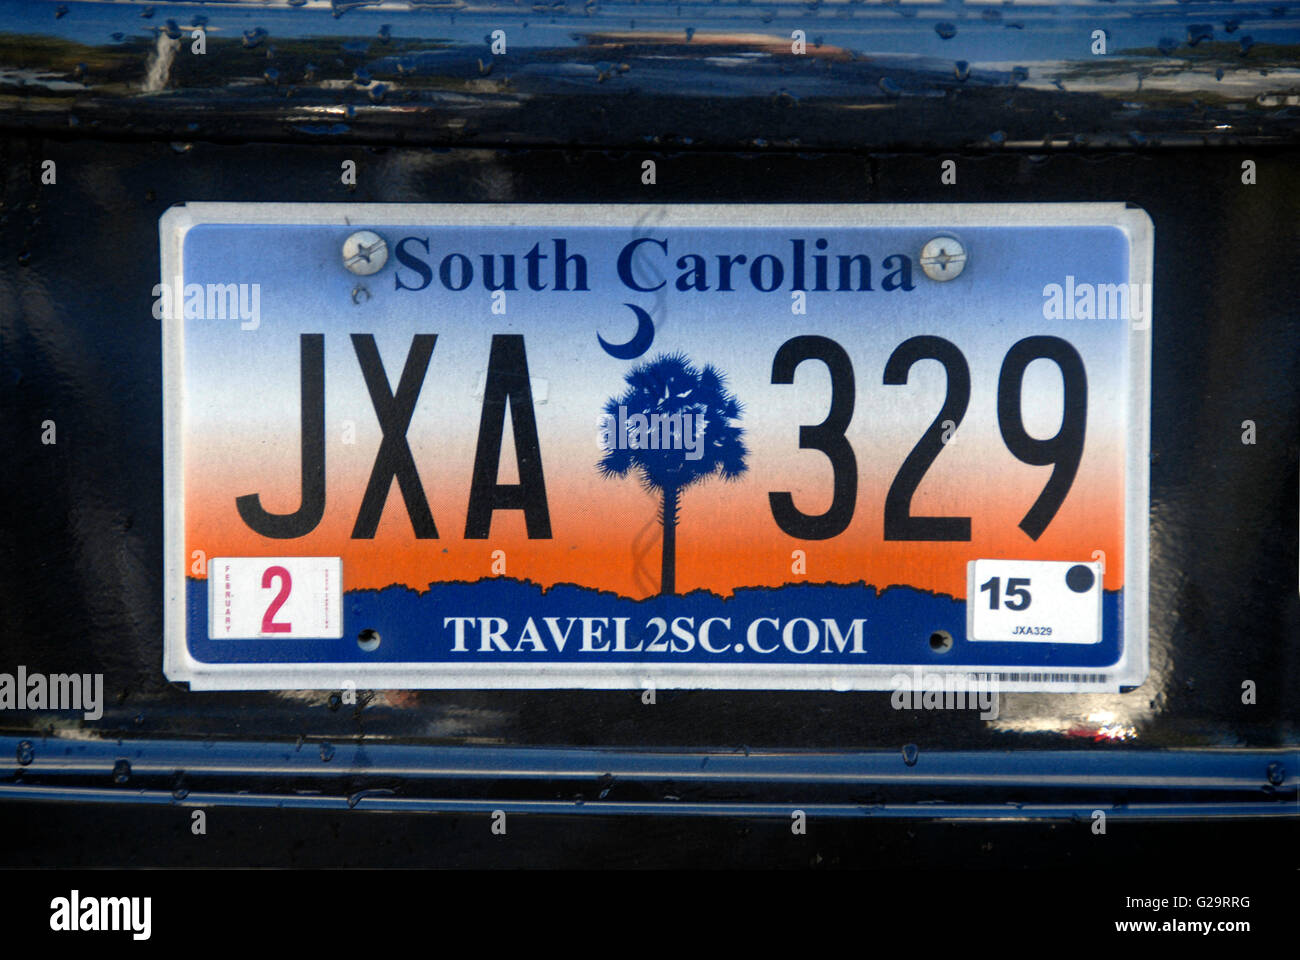 Car number plate, South Carolina, USA - Stock Image